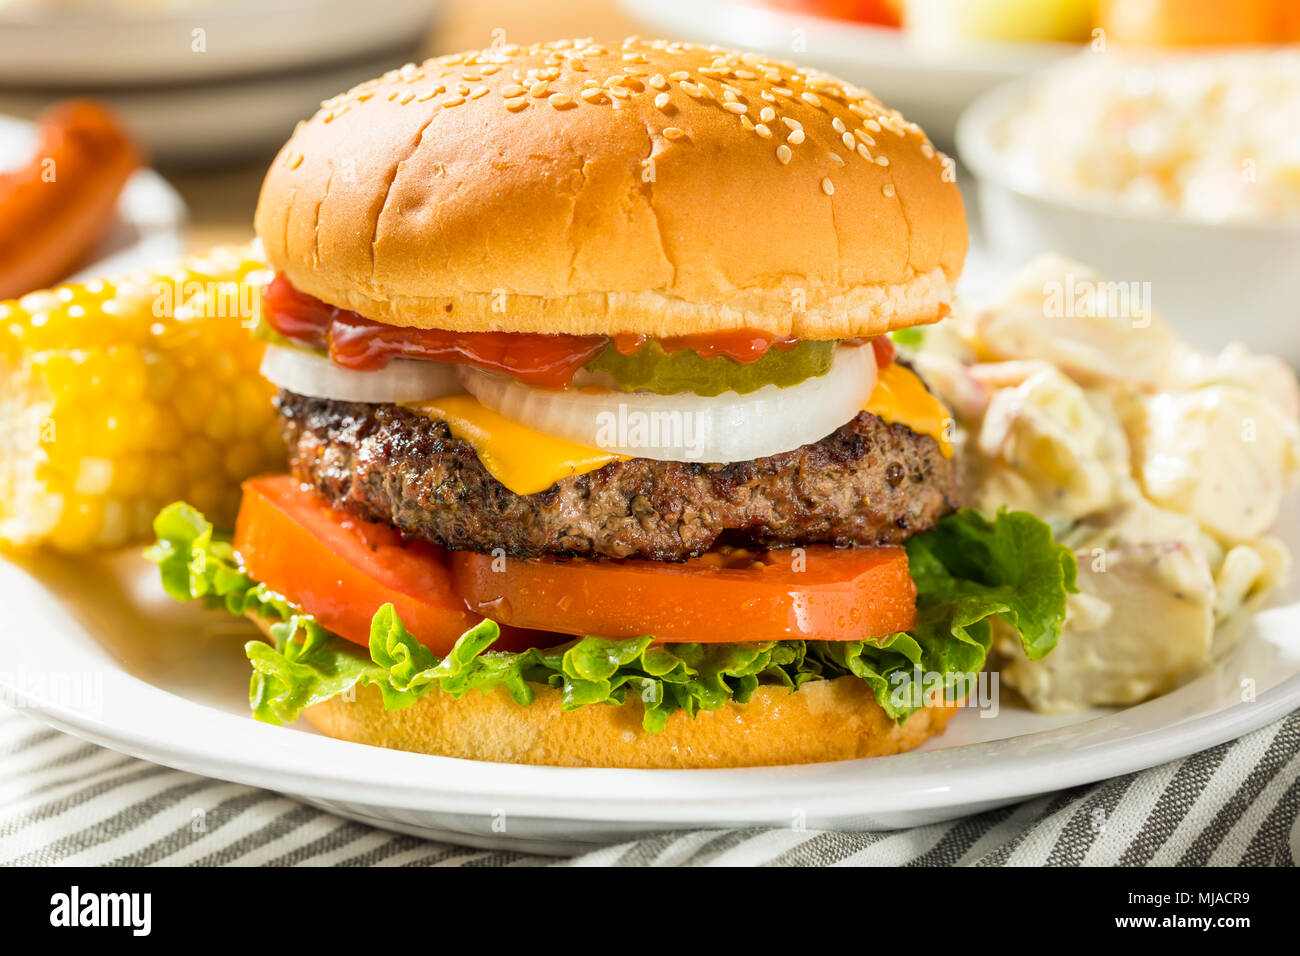 Memorial Day Backyard Babecue Meal with Hamburgers Hot dogs Salads and Chips - Stock Image